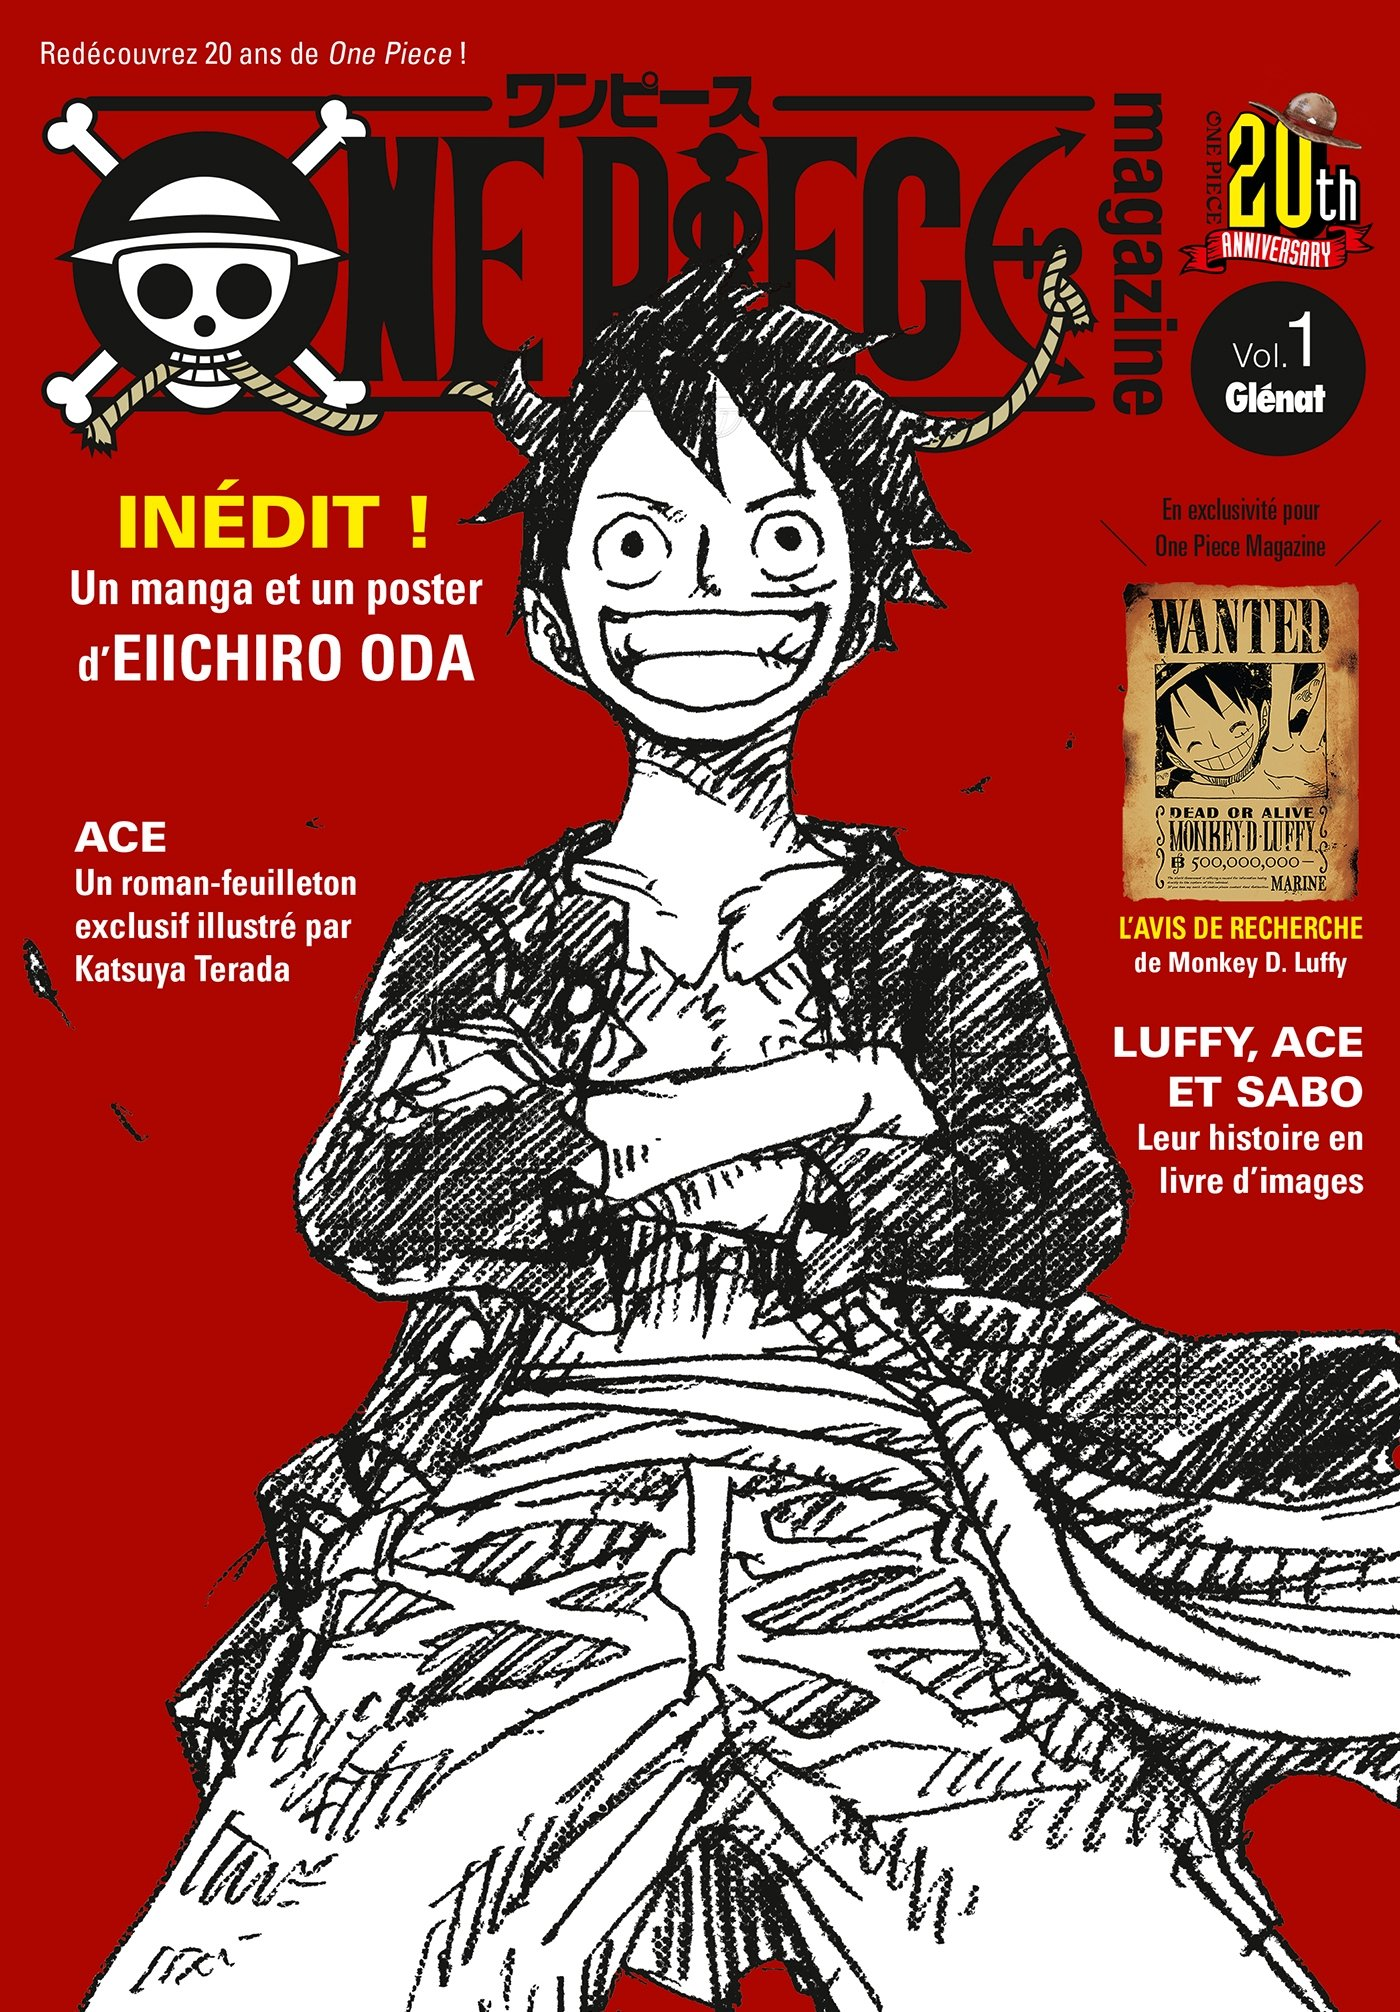 One piece magazine 1